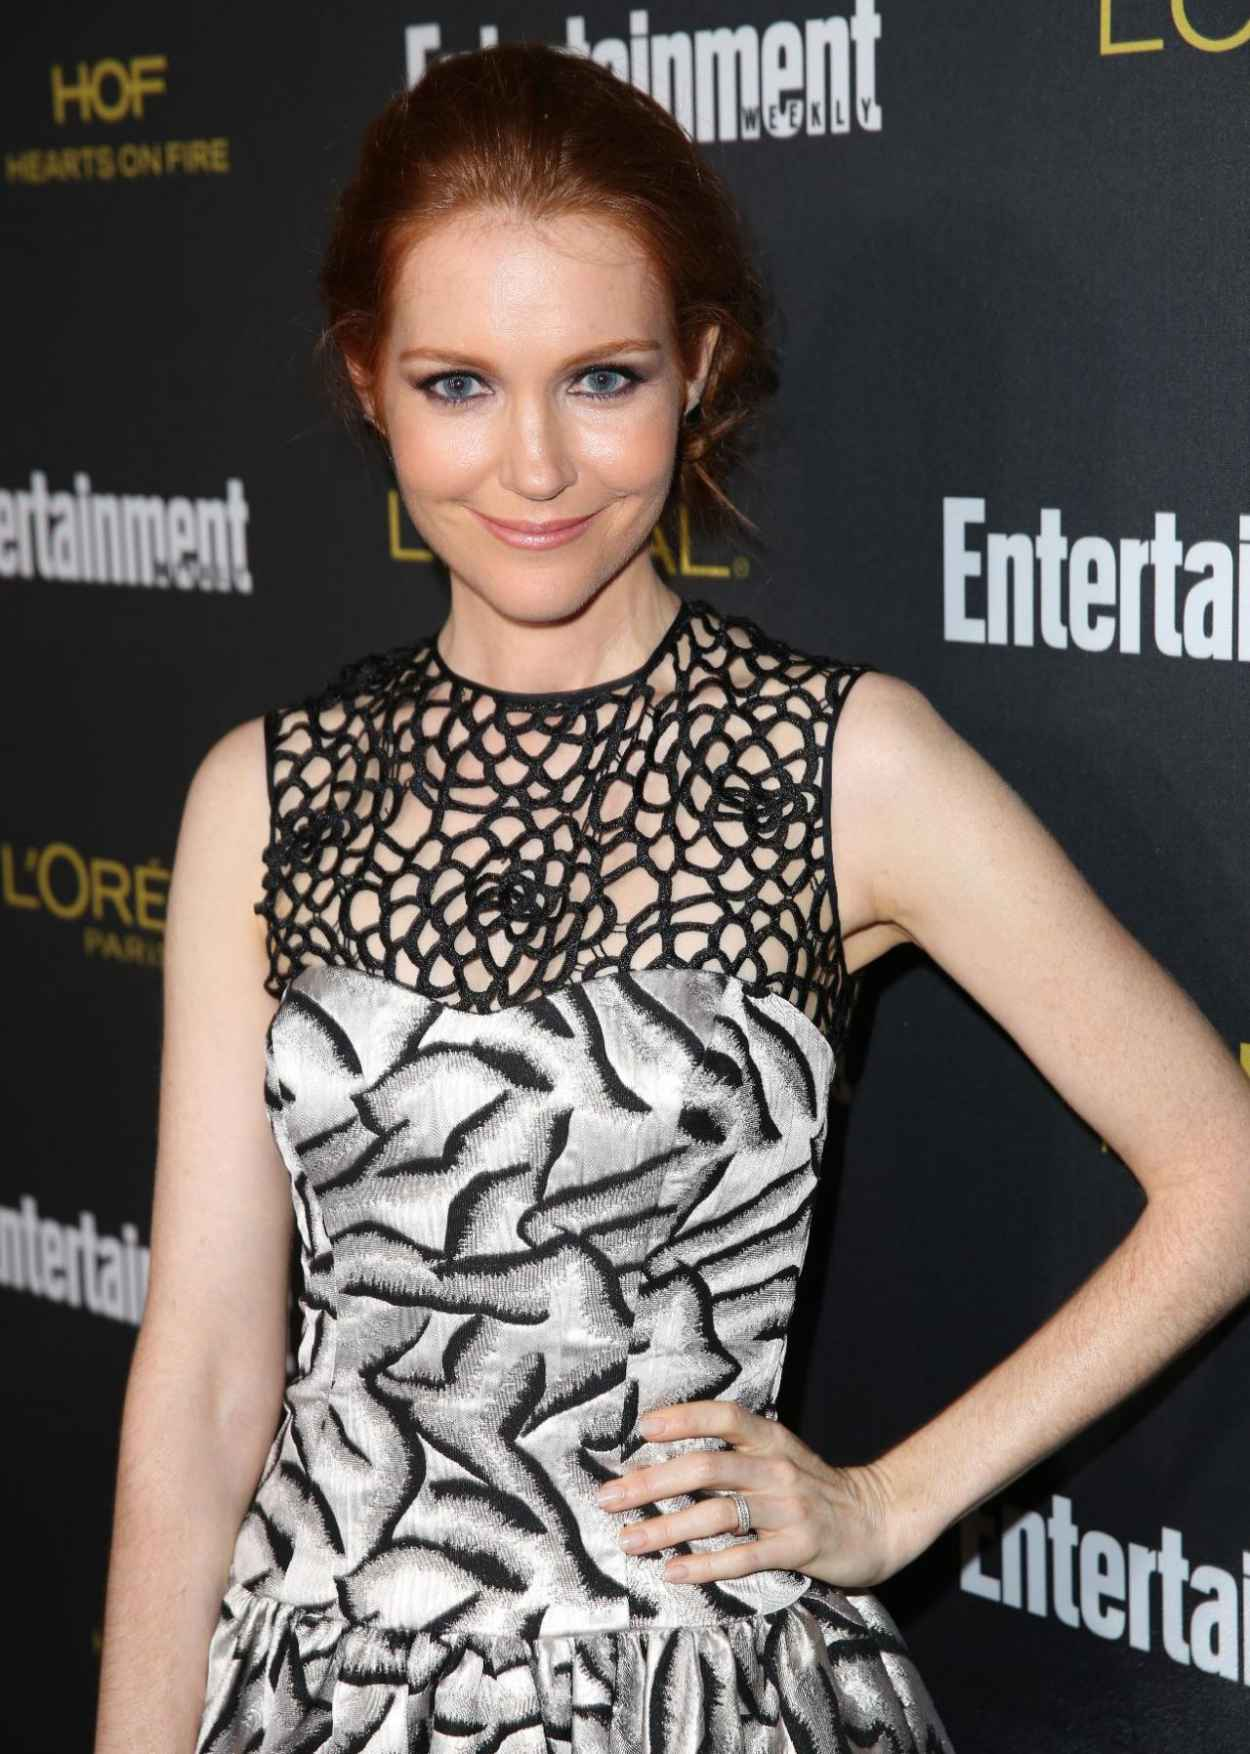 darby stanchfield hot